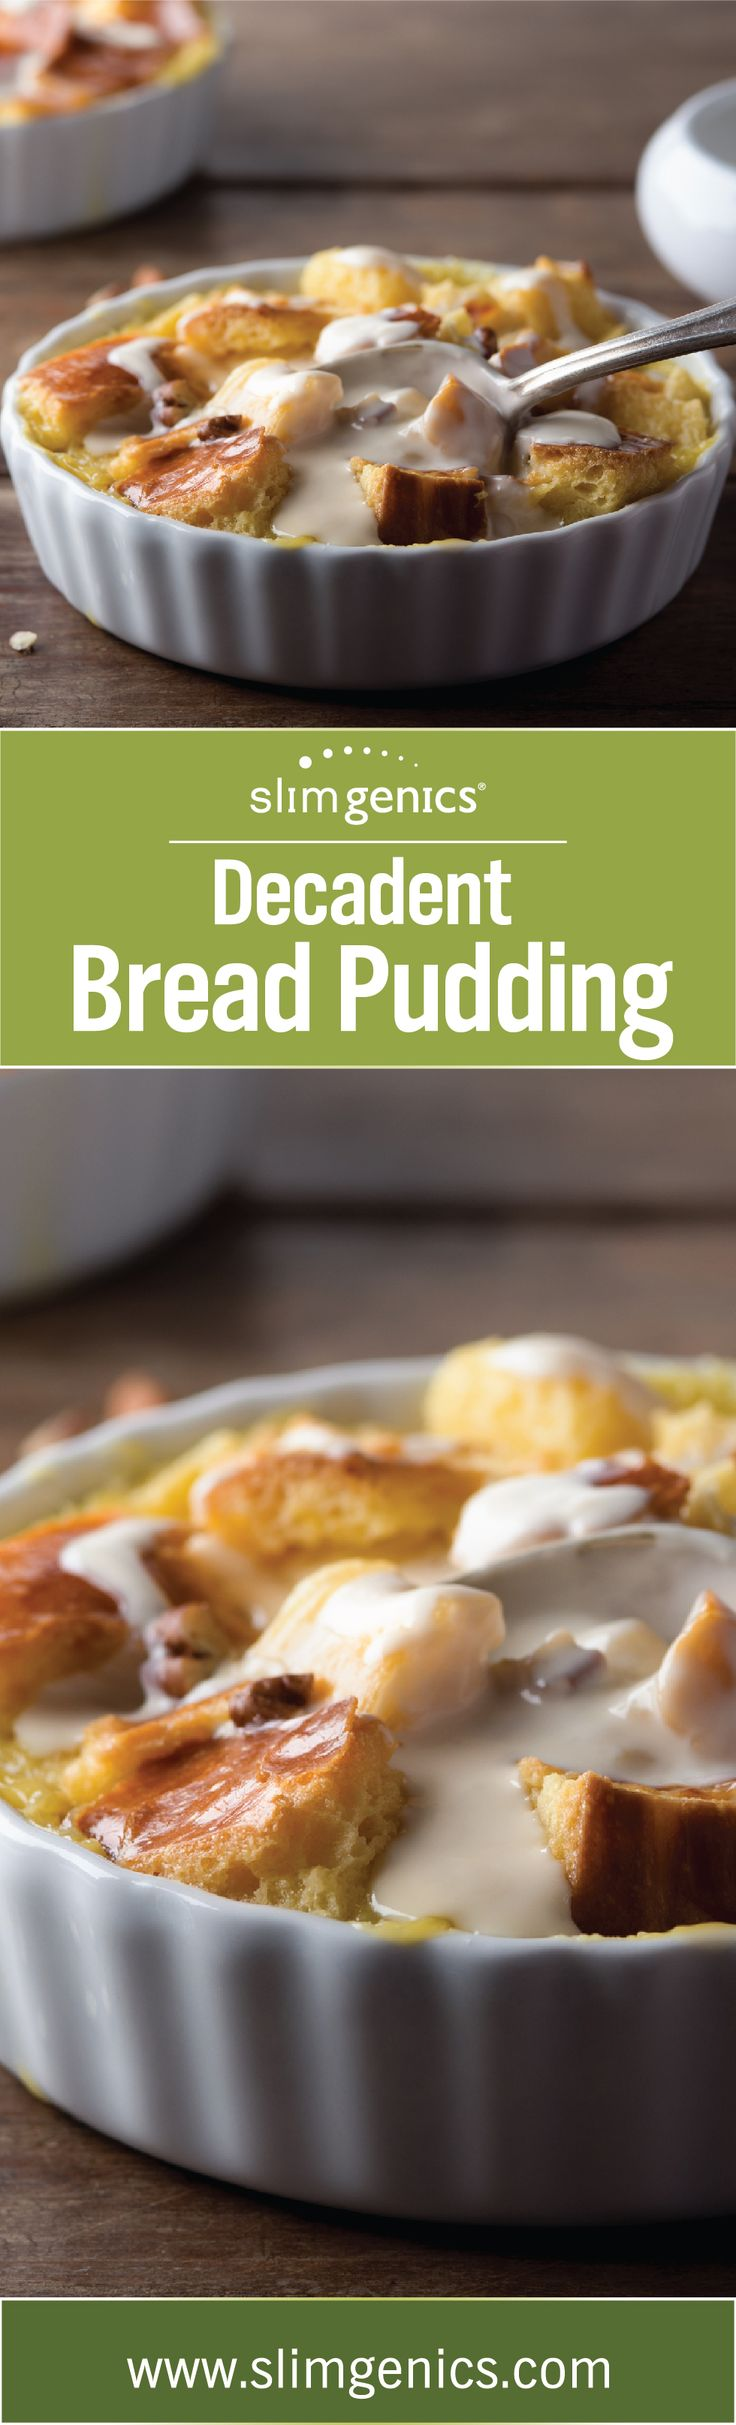 Try this bread pudding recipe for a sweet and gooey treat that will definitely get you into the holiday spirit and feeling anything but deprived.